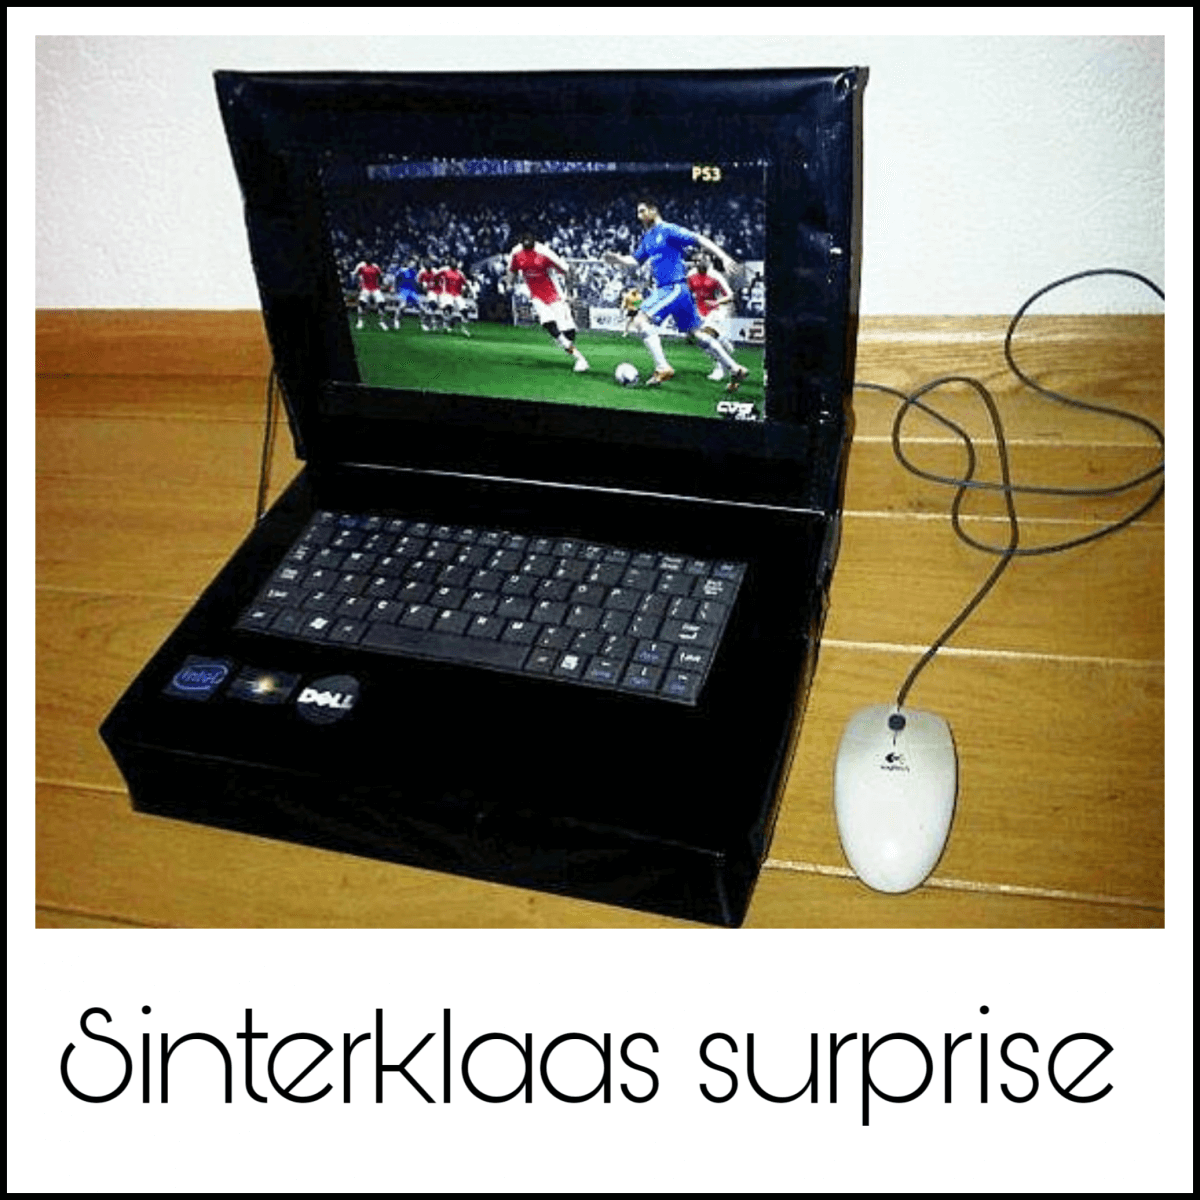 Sinterklaas surprise laptop computer